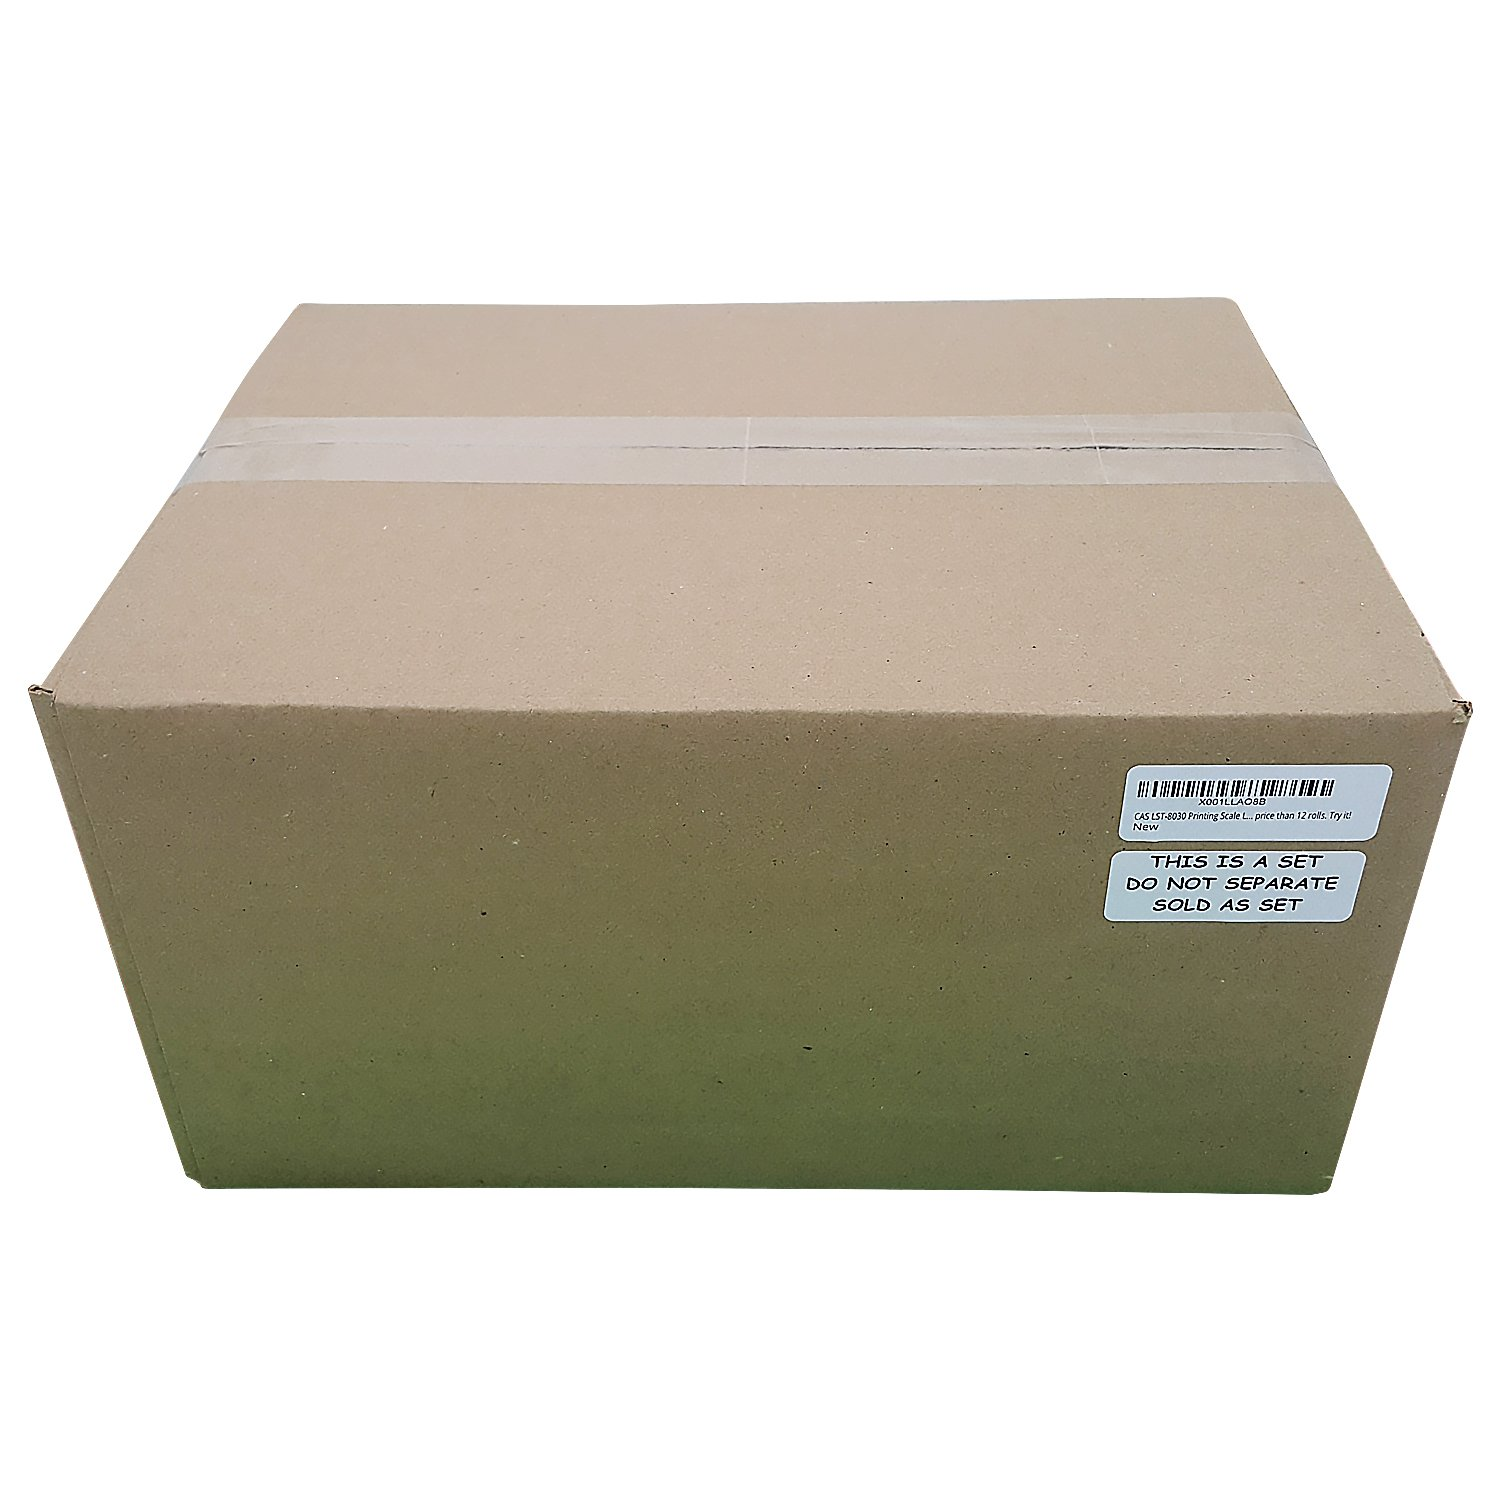 CAS LST-8010 Printing Scale Label, 58 x 40 mm, UPC ''36 ROLLS'' Per Case. Lower price than 12 rolls. Try it.